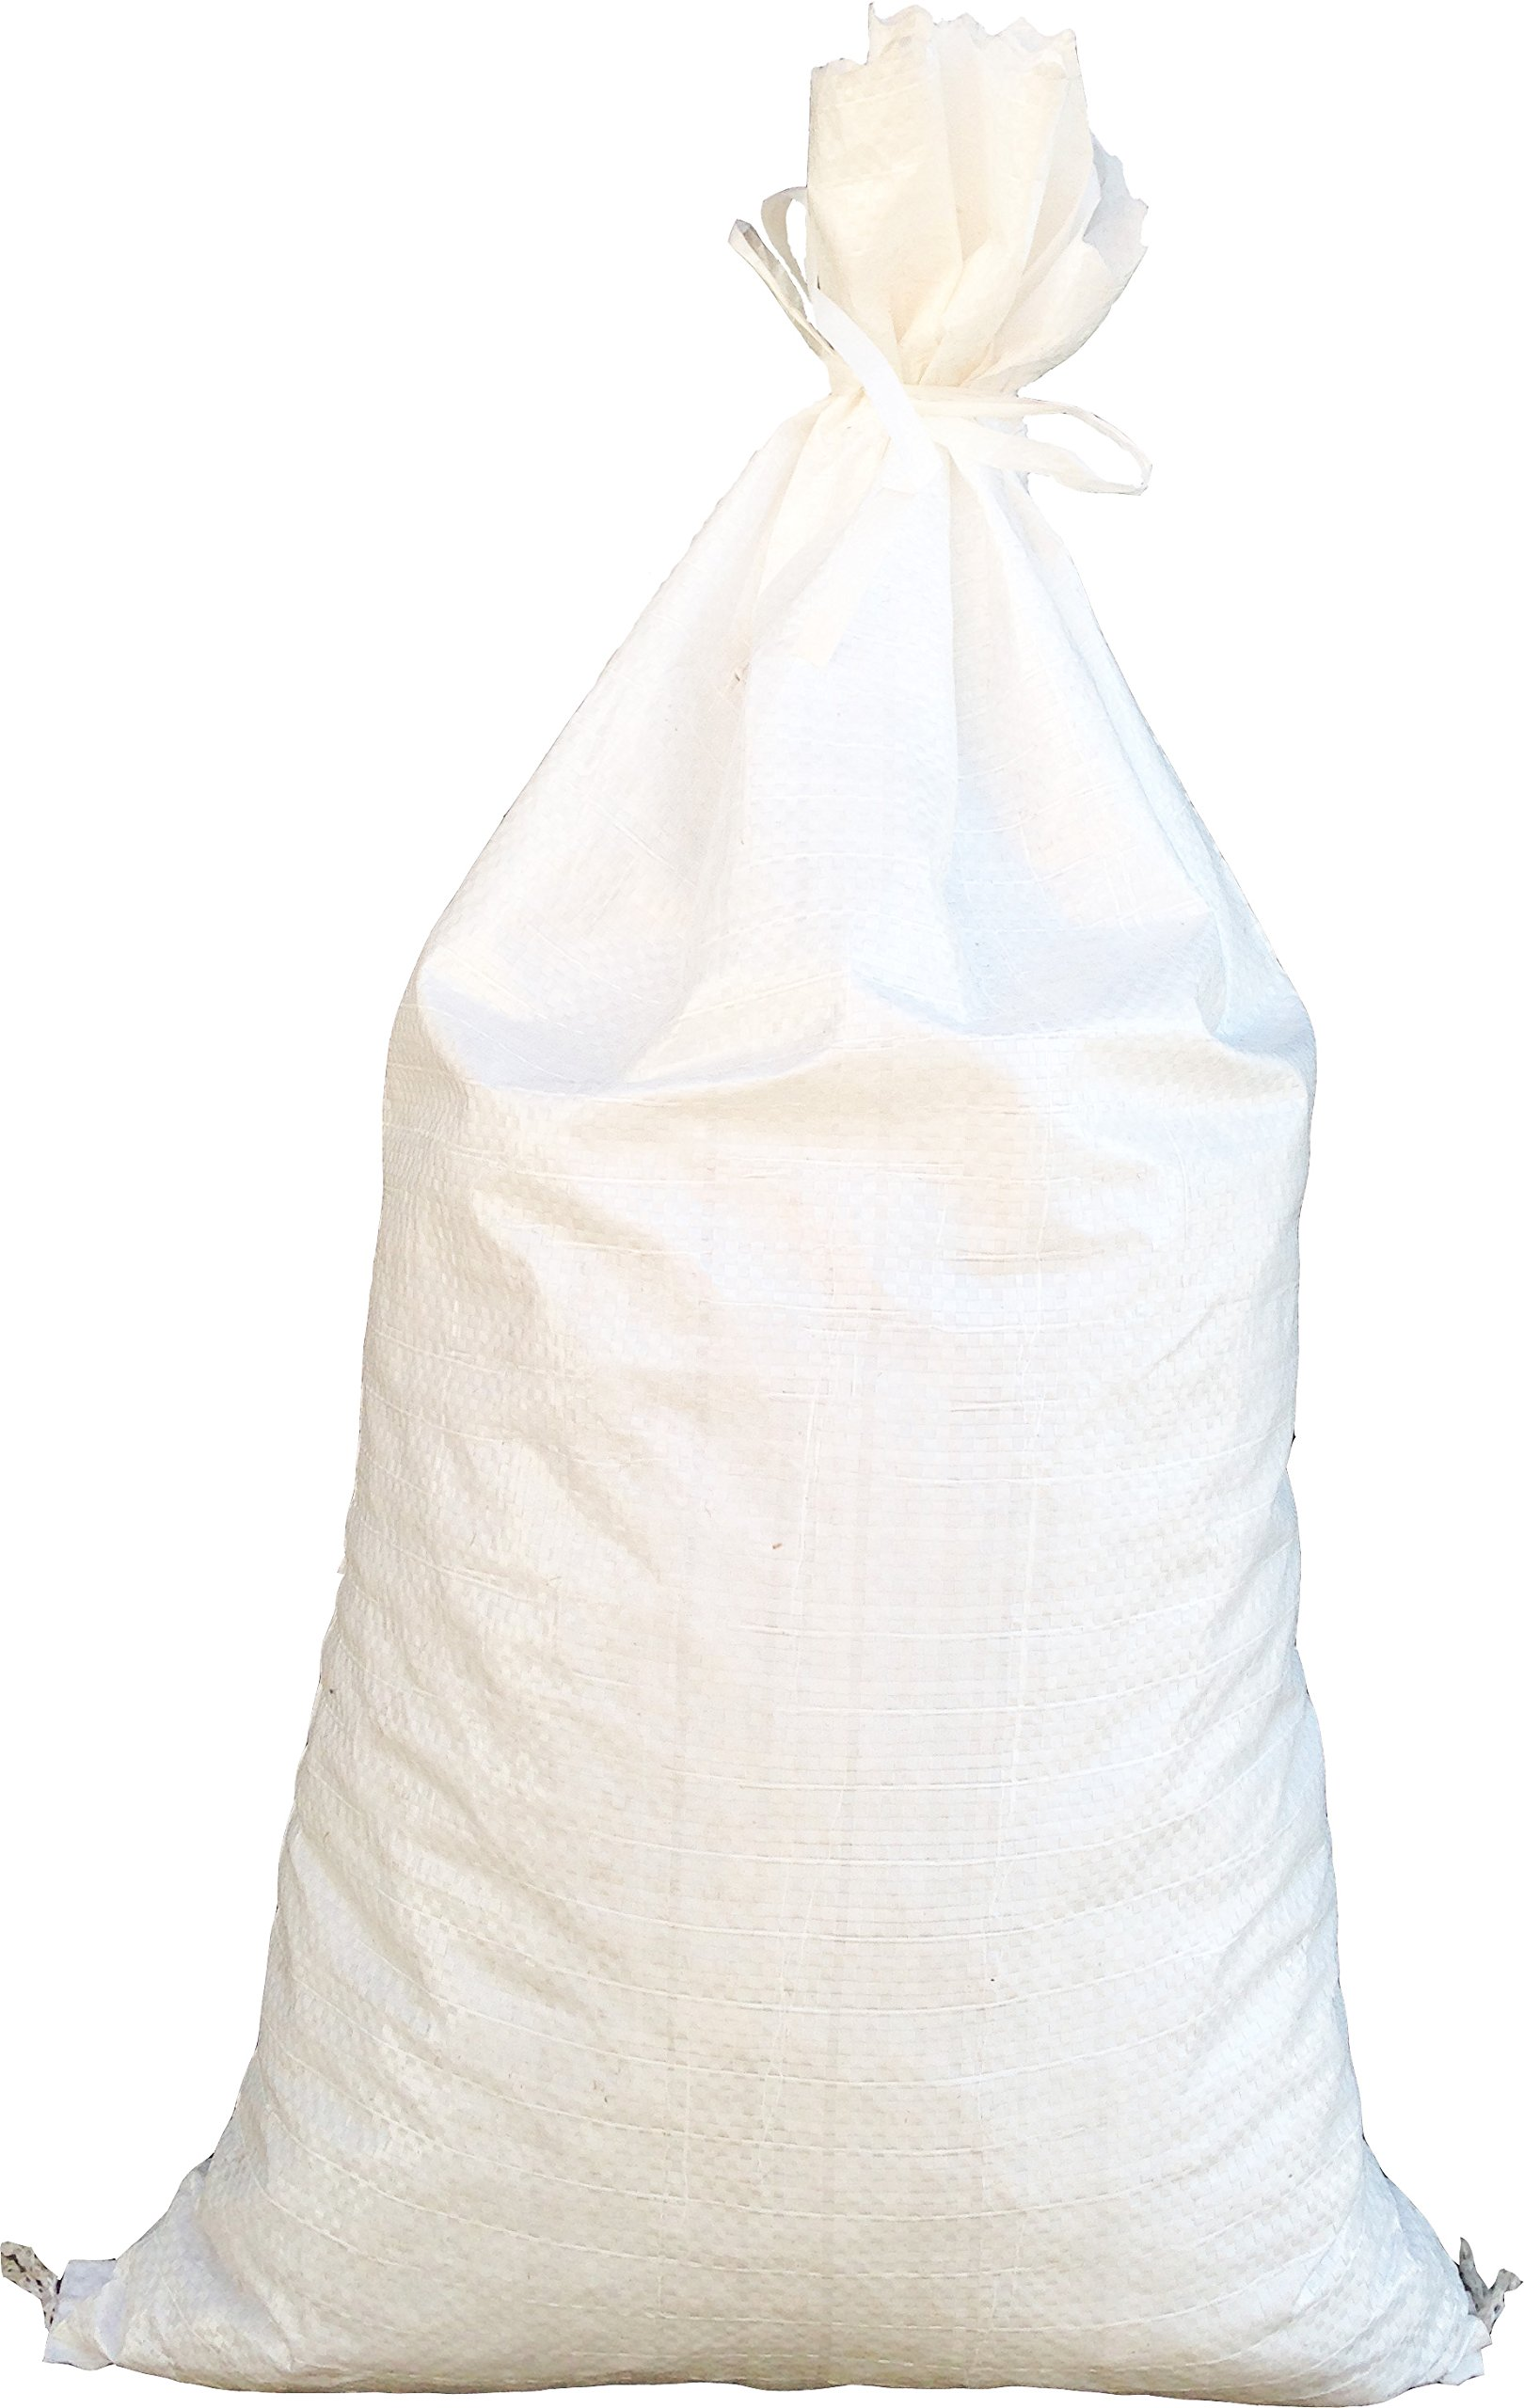 Sandbags for Flooding - Size: 18'' x 30'' - Color: White - Sand Bag - Flood Water Barrier - Water Curb - Tent Sandbags - Store Bags by Sandbaggy (1000 Bags) by Sandbaggy